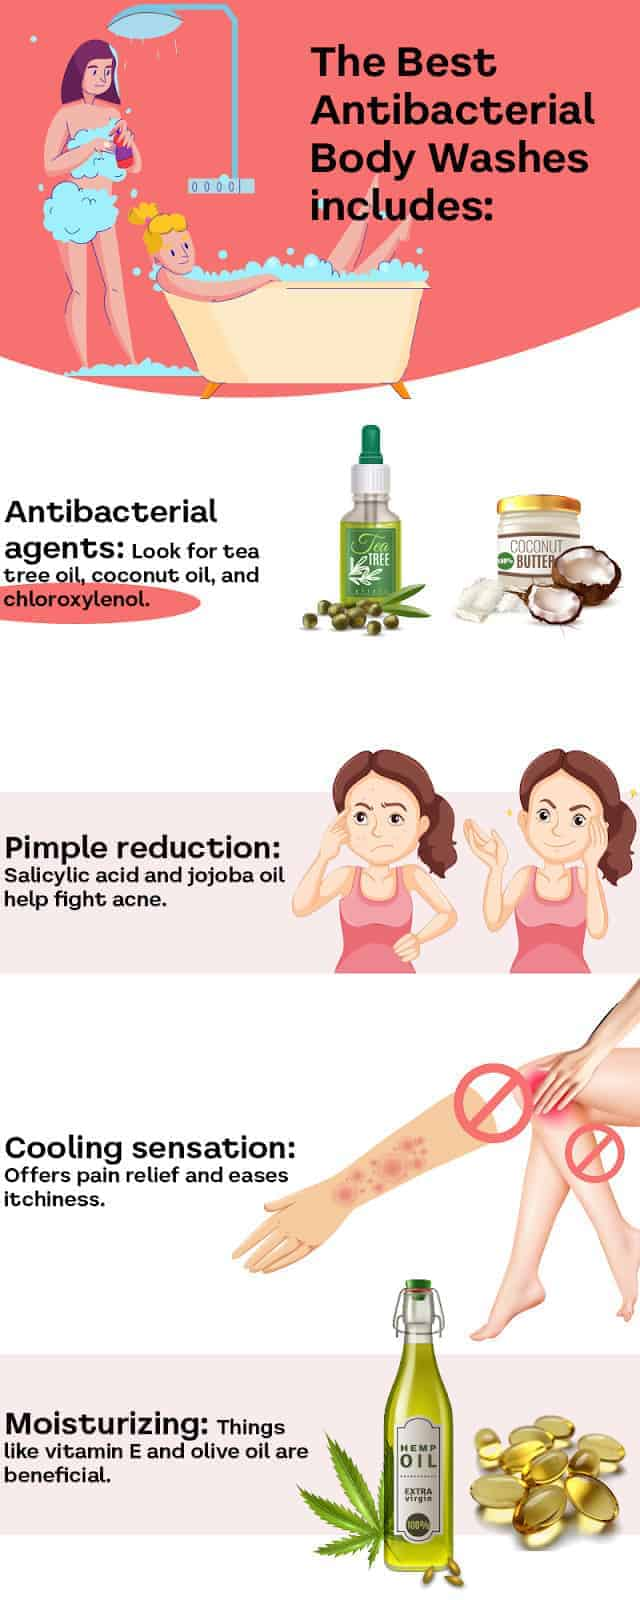 Best Antibacterial Body Washes infographic